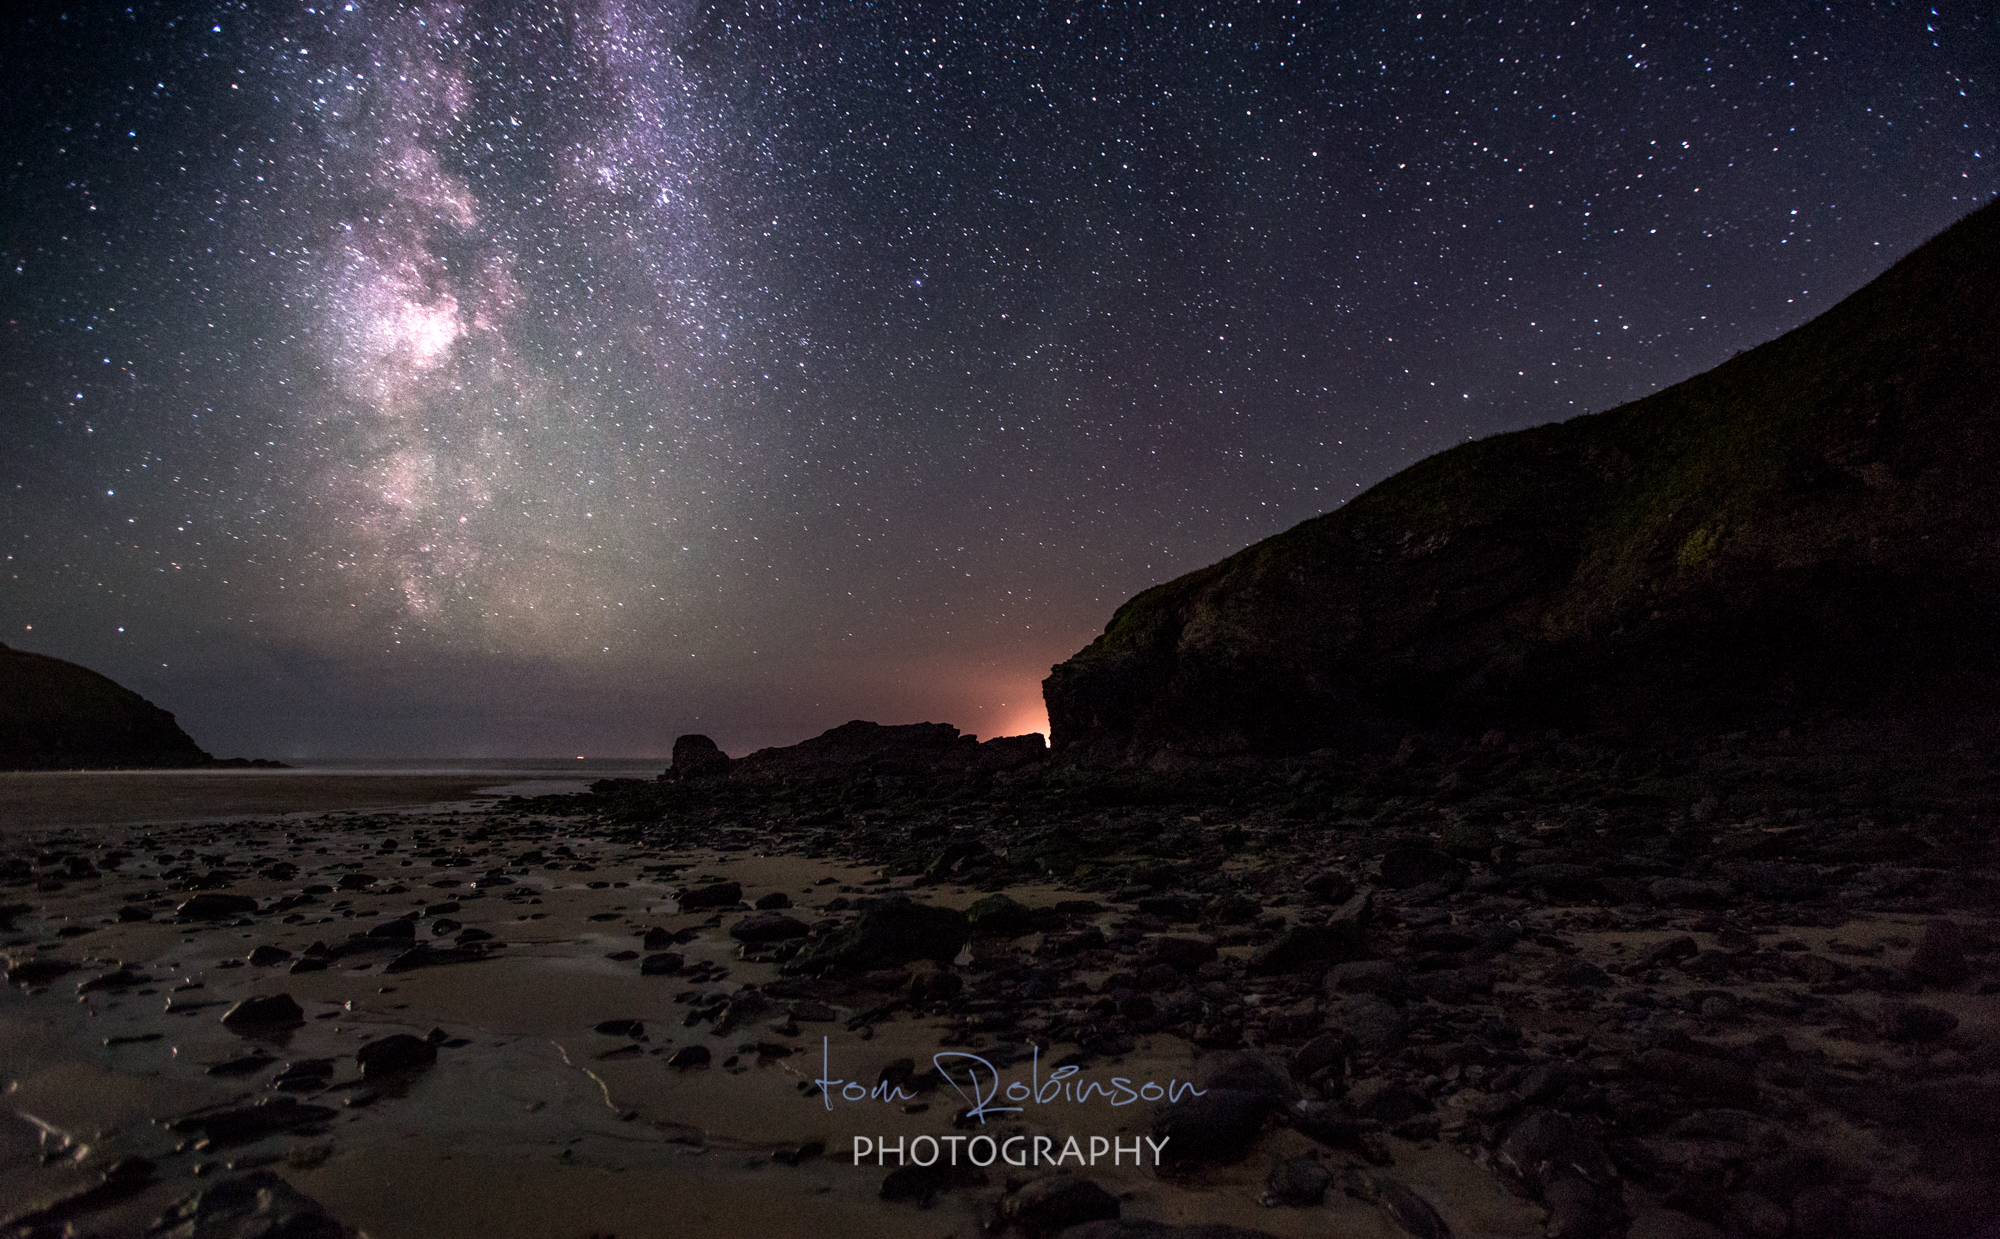 Poldhu by night from the Cornwall by night collection by Tom Robinson Photography